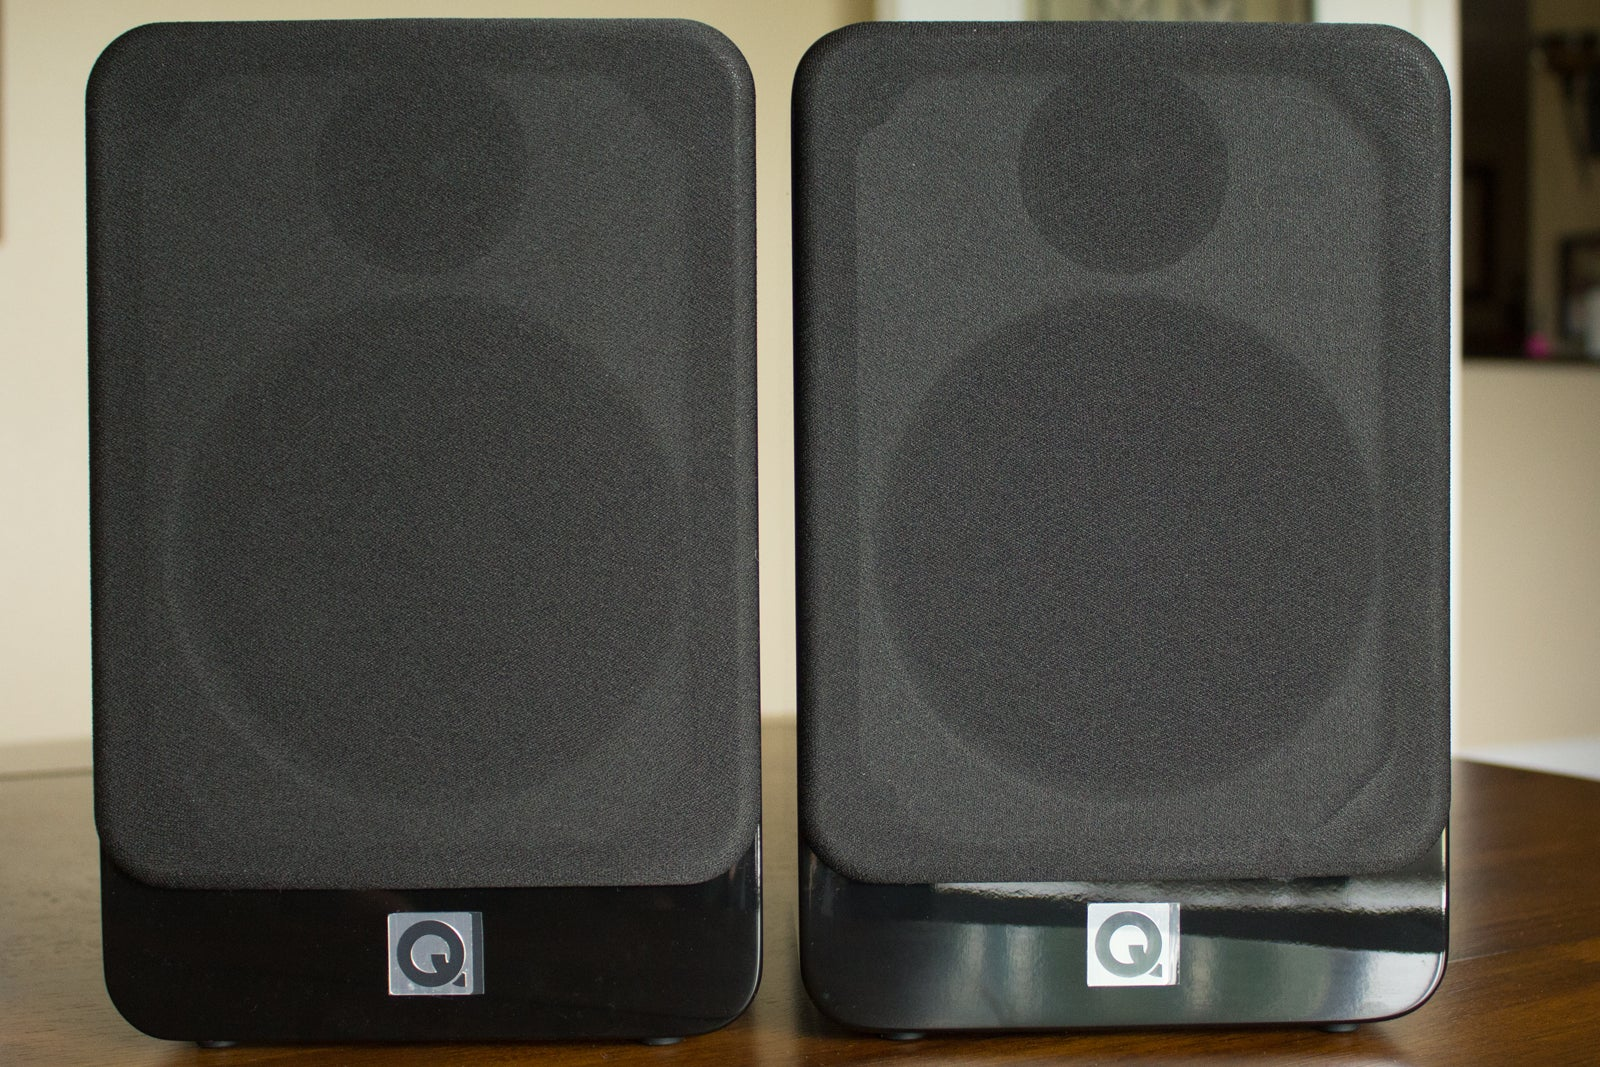 Q Acoustics Concept 20 Loudspeaker Review These Gorgeous Bookshelf Subwoofer Wiring On Speaker Bi Amplifier And Home Cinema Speakers Sound Positively Divine Techhive